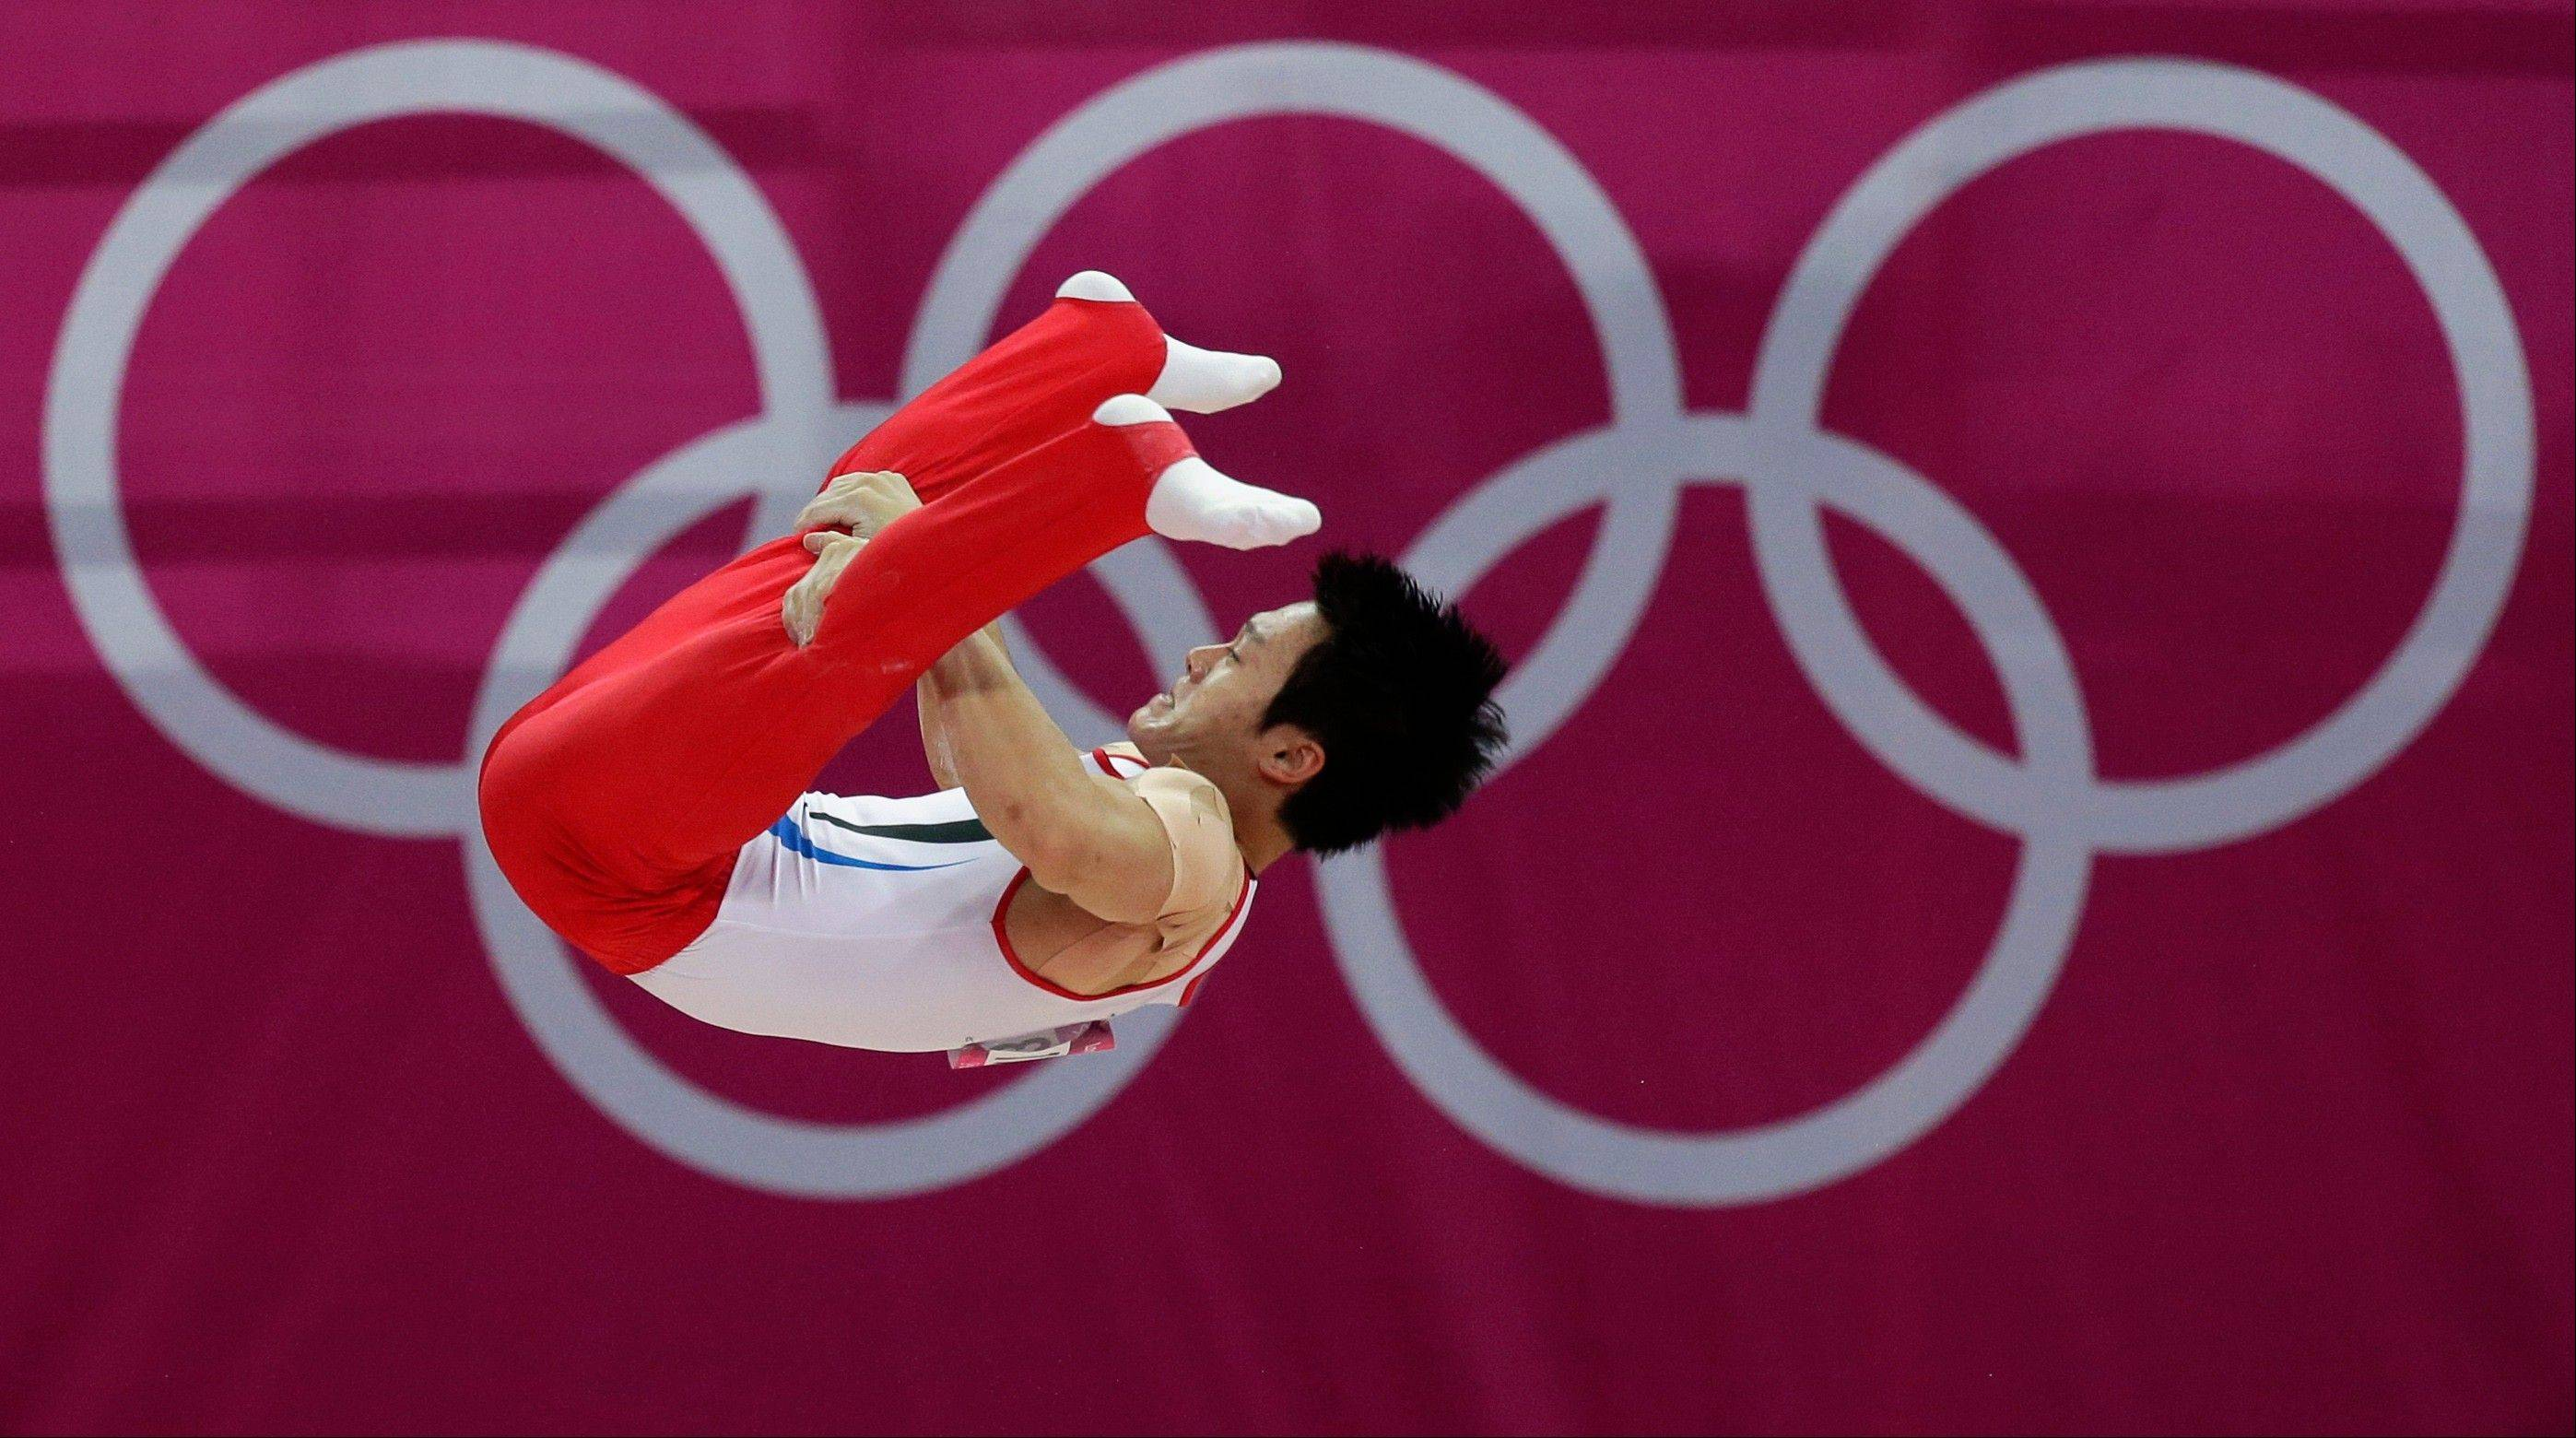 South Korean gymnast Kim Seungil performs on the parallel bars during the Artistic Gymnastic men�s qualification at the 2012 Summer Olympics, Saturday, July 28, 2012, in London.